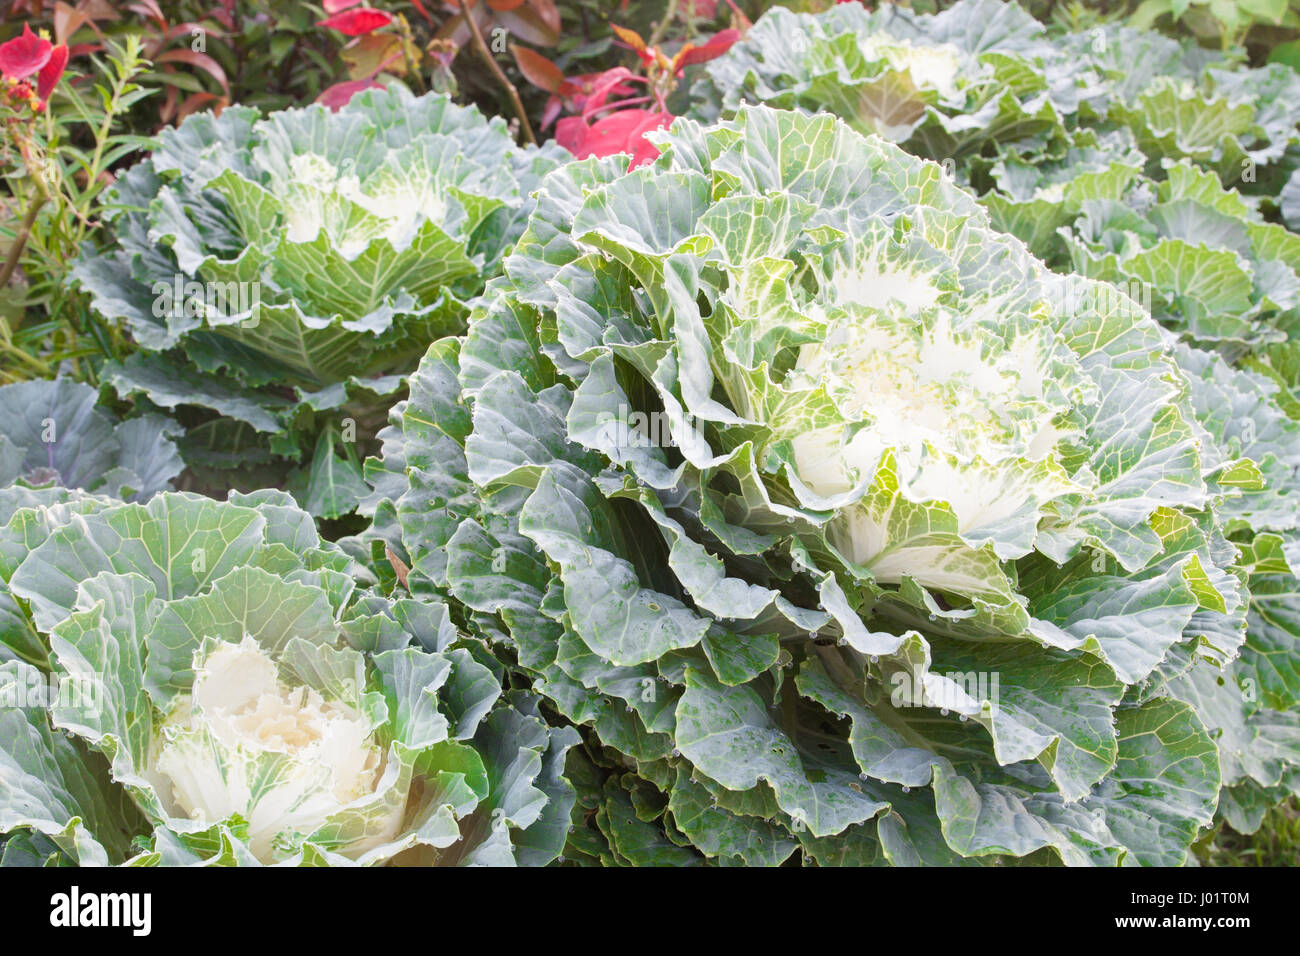 a white cabbage of a variety immature flower head of large creamy white flower buds in garden - Stock Image